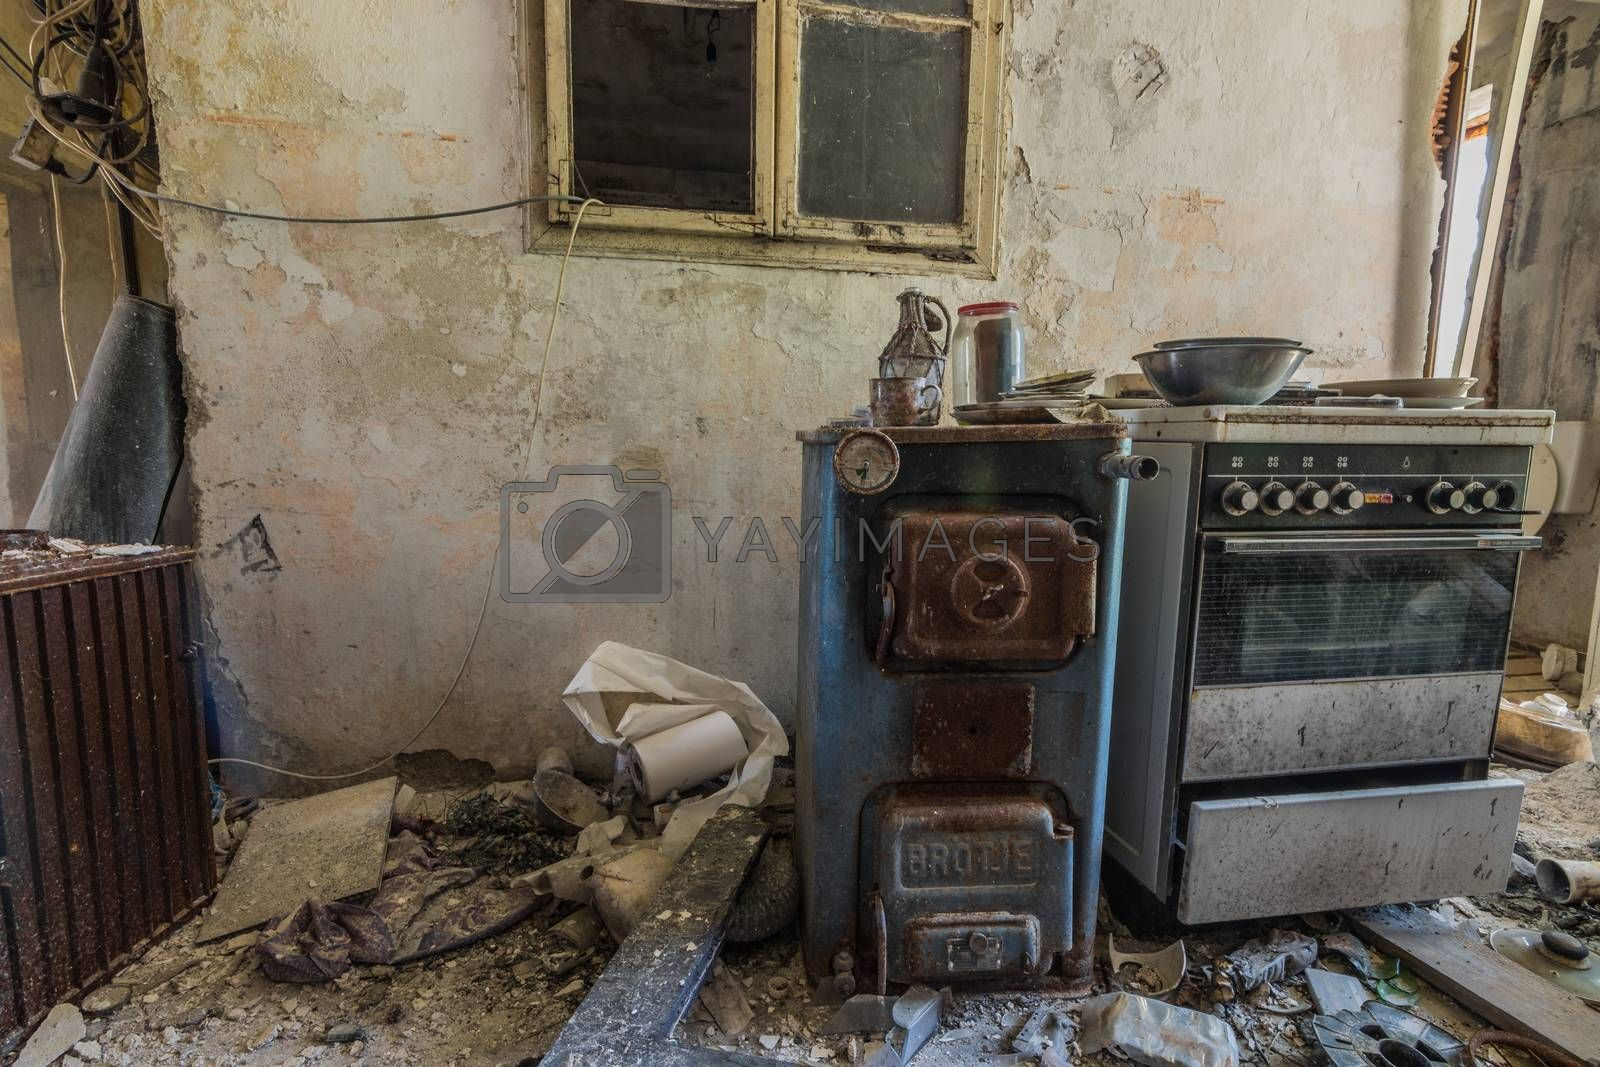 old ovens near a window in an abandoned house